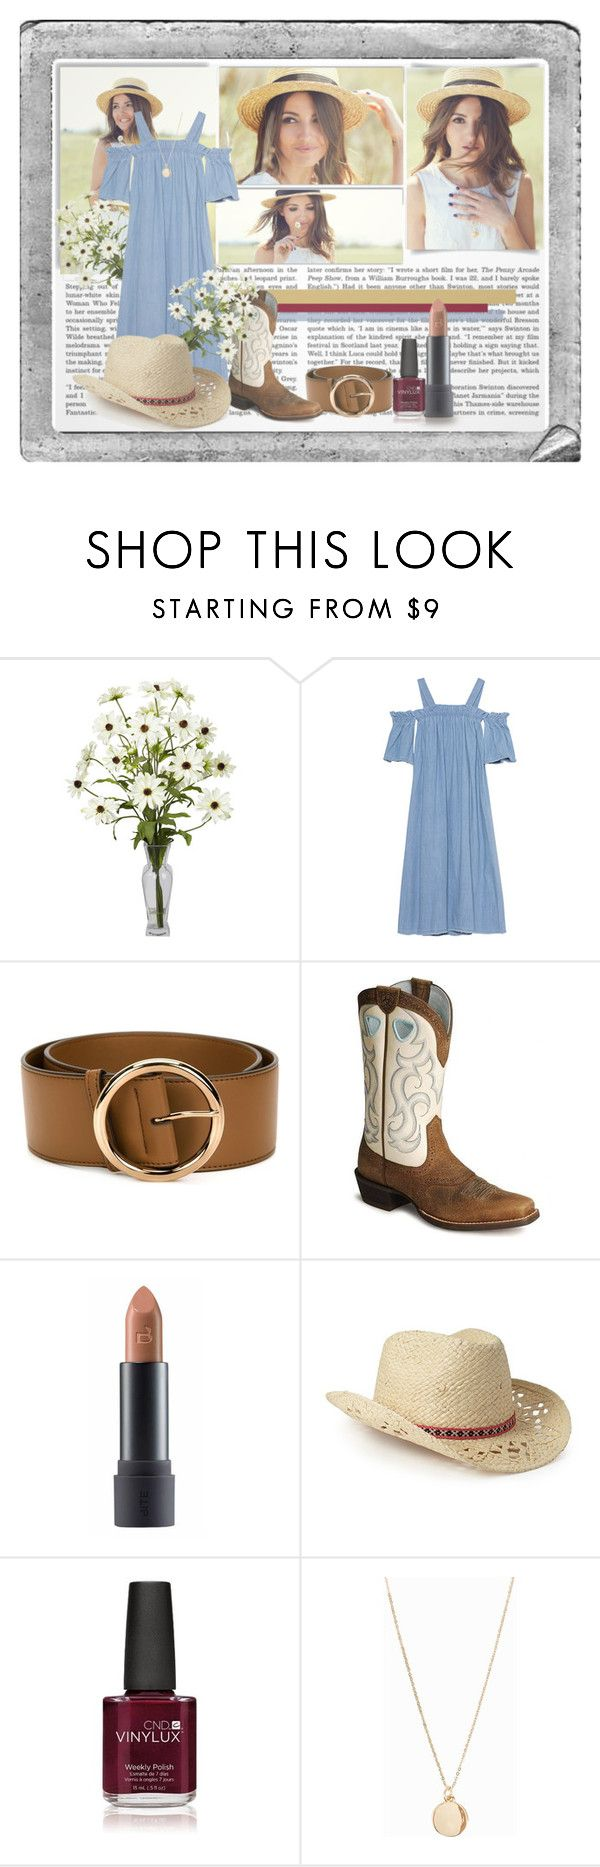 """Cowboy-girl"" by karimaputri on Polyvore featuring Polaroid, White Label, SJYP, STELLA McCARTNEY, Ariat, Bite, Forever 21, Creative and NLY Accessories"